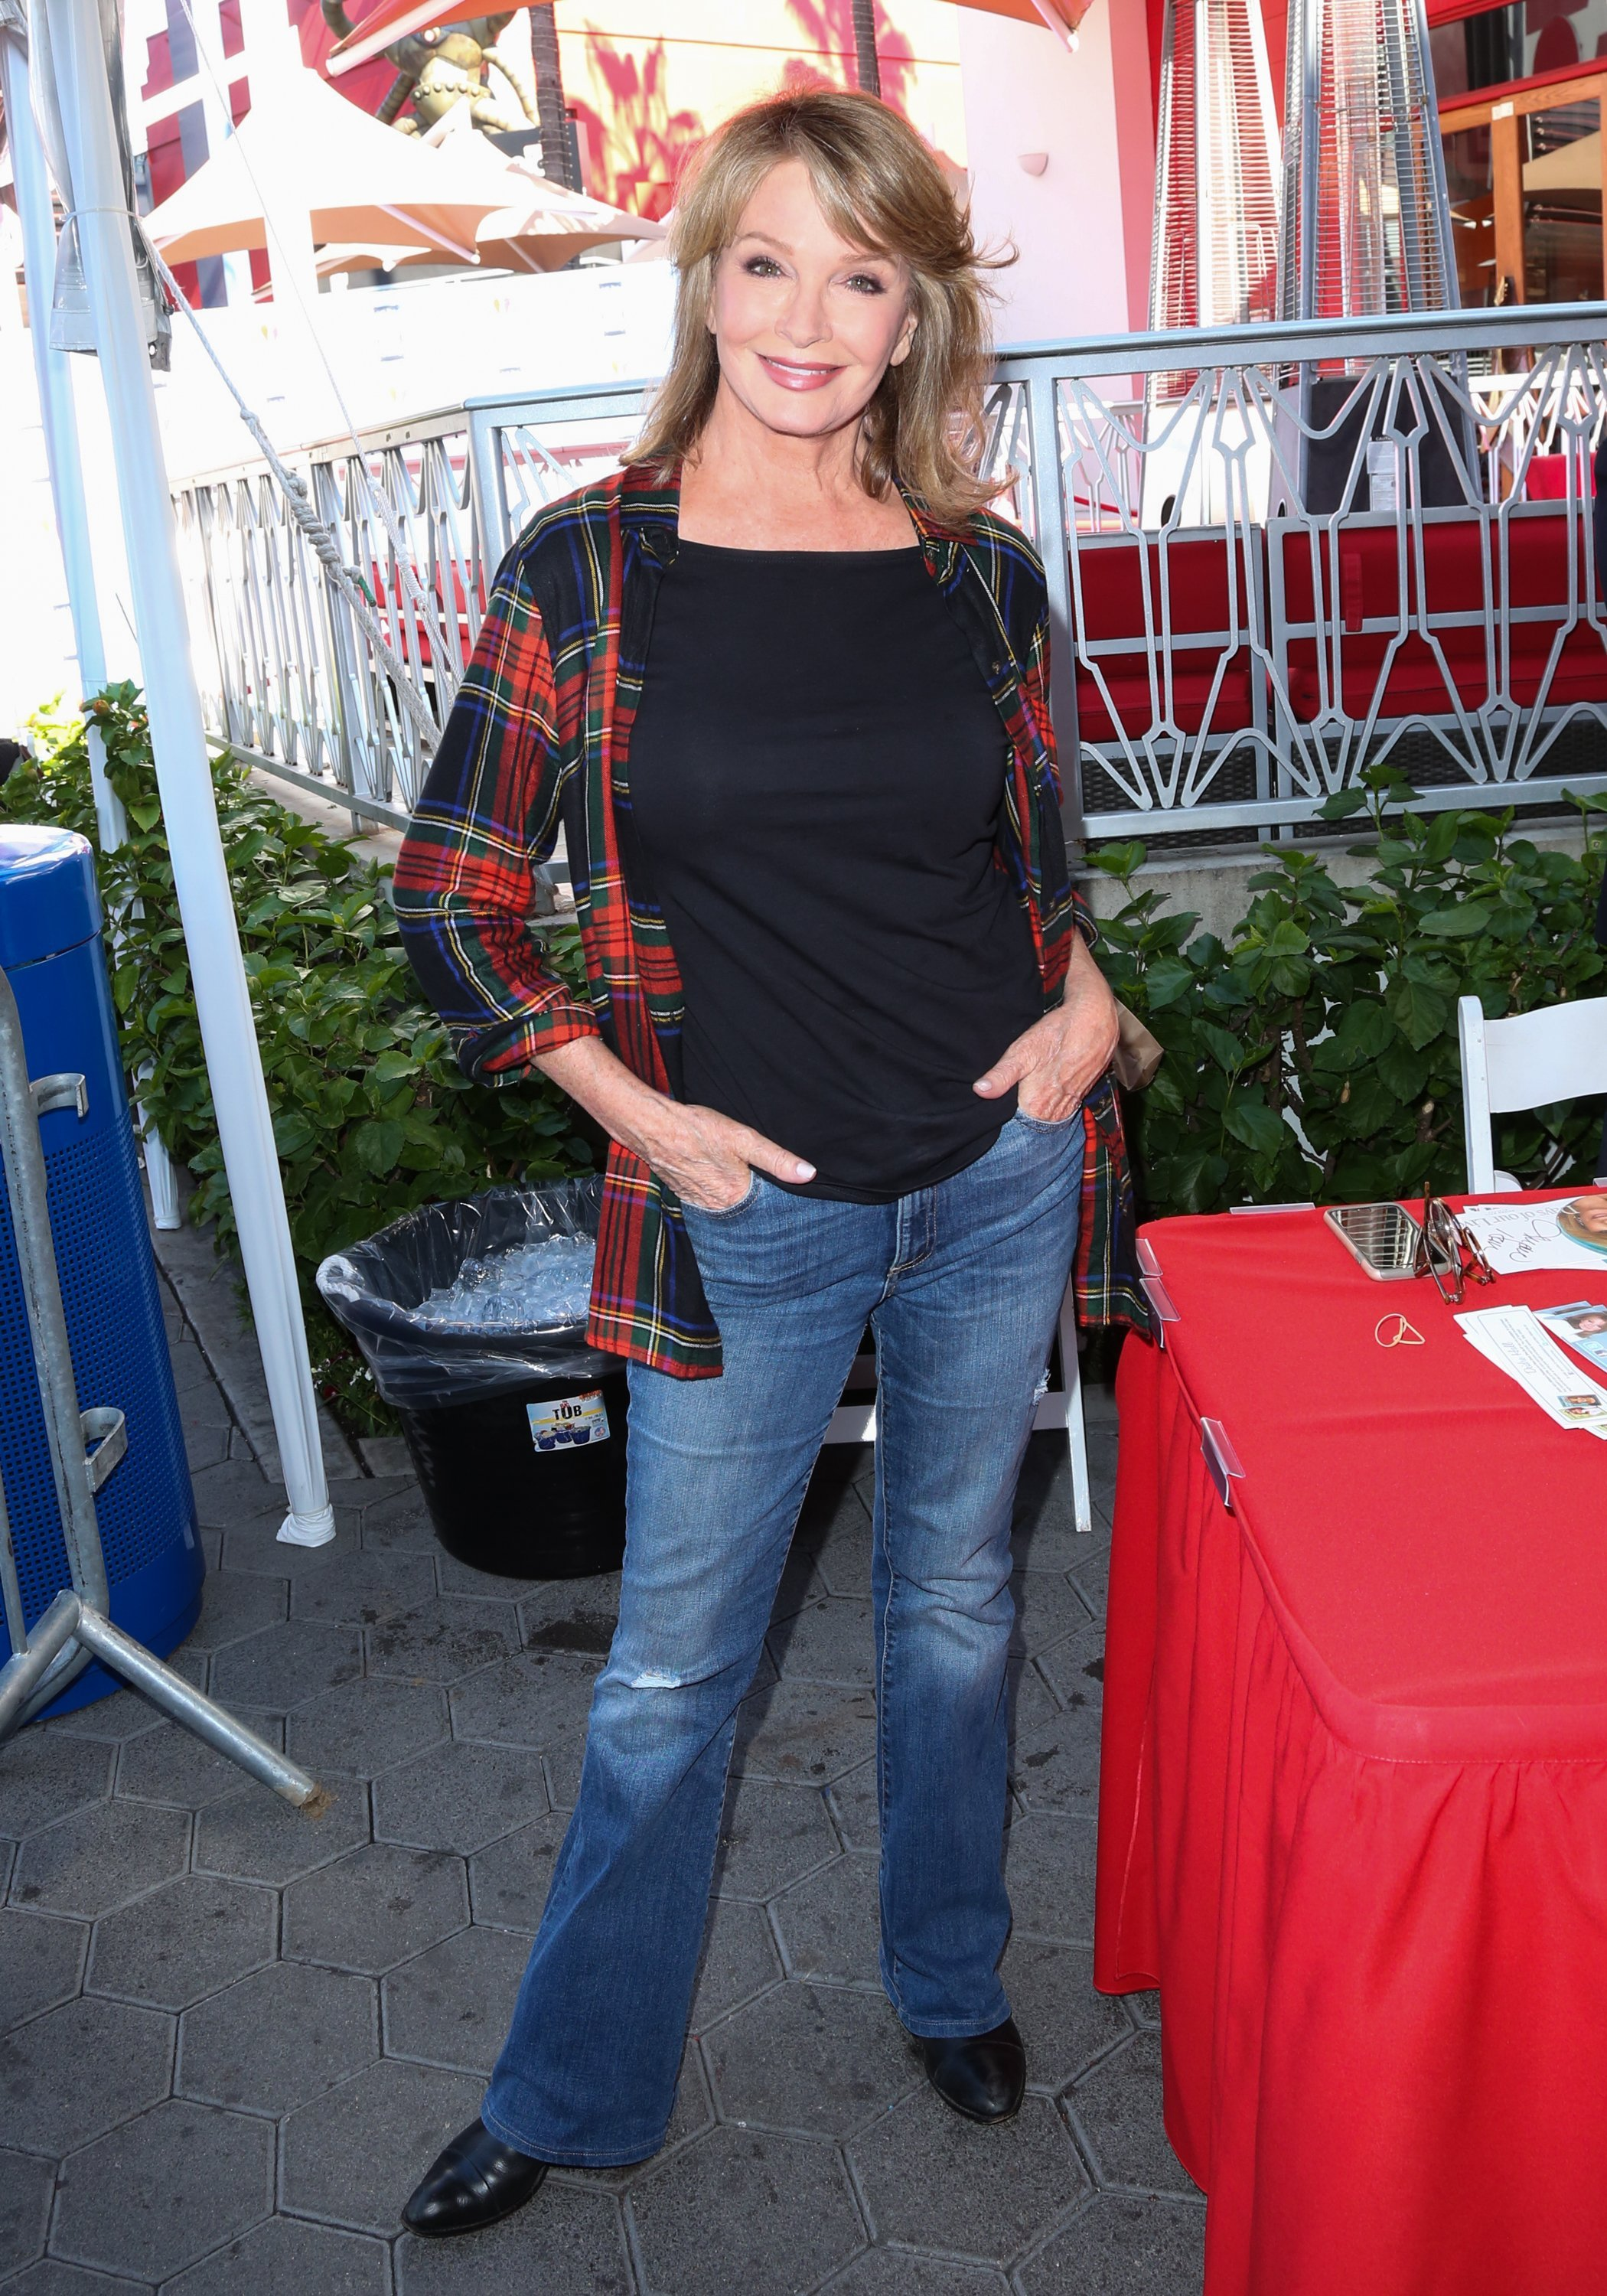 """Deidre Hall attends the """"Day Of Days"""" fan event at Universal CityWalk on November 11, 2017 